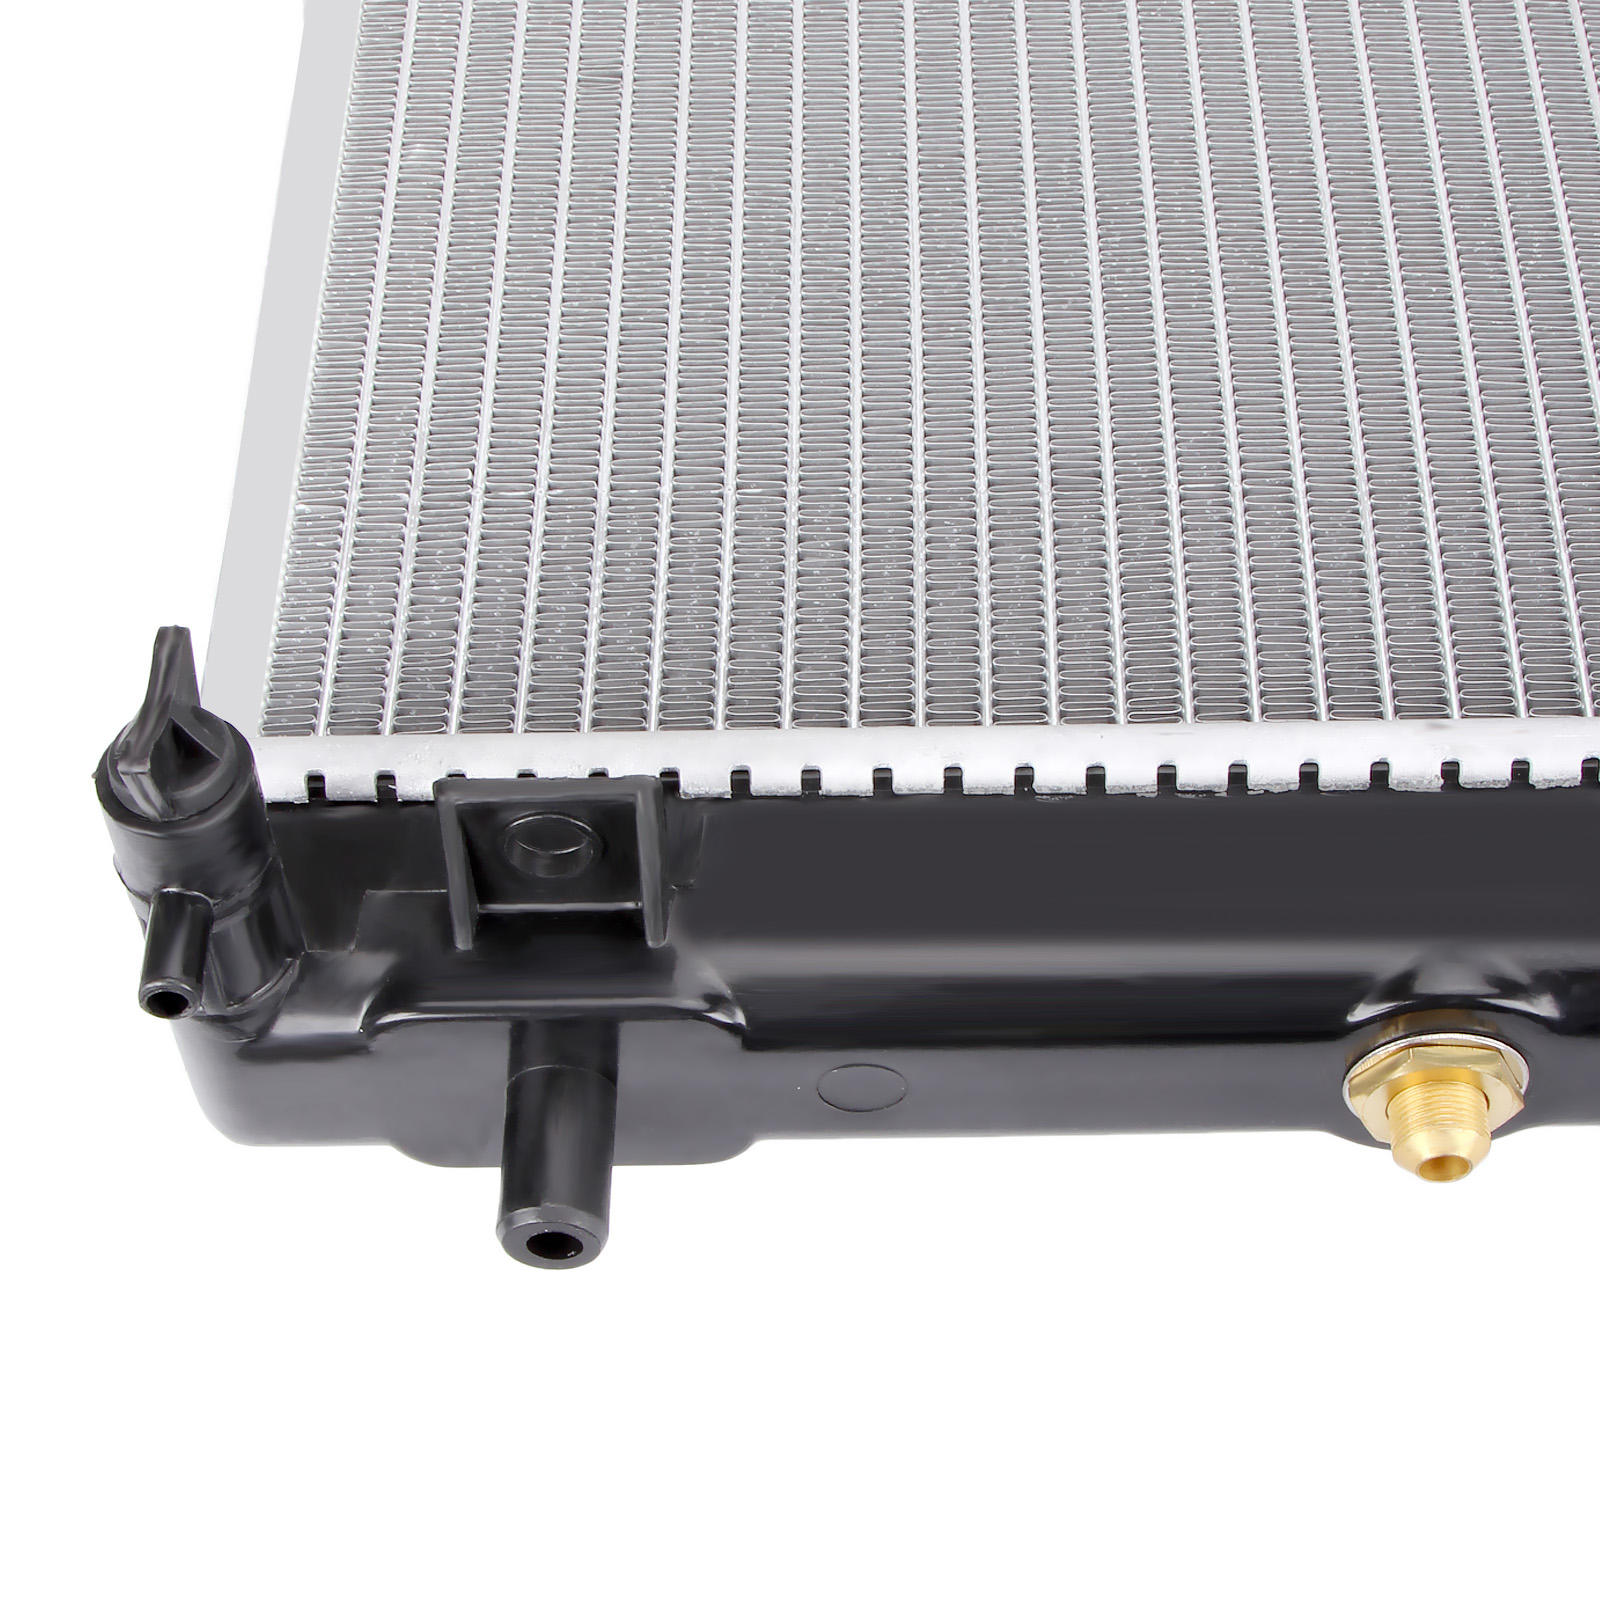 Radiator For Mitsubishi Pajero 3.0/3.5/3.8L V6 NM/NP/NS/NT Pajero Petrol AT/MT